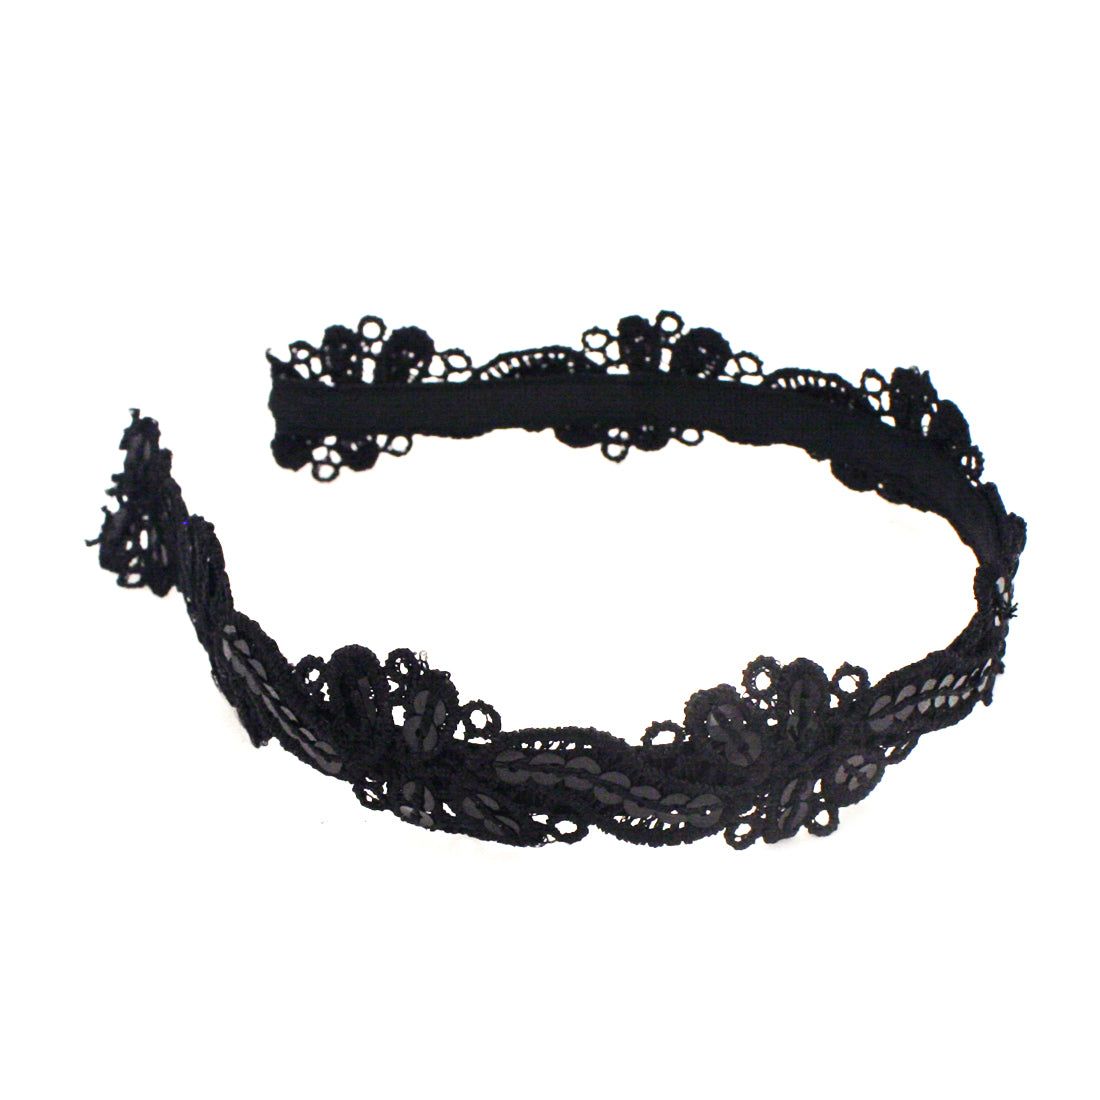 Mia® Lace + Sequins Headband - black - #MiaKaminski #Mia #MiaBeauty #Beauty #Hair #HairAccessories #headbands #suedeheadband #lovethis #love #life #woman